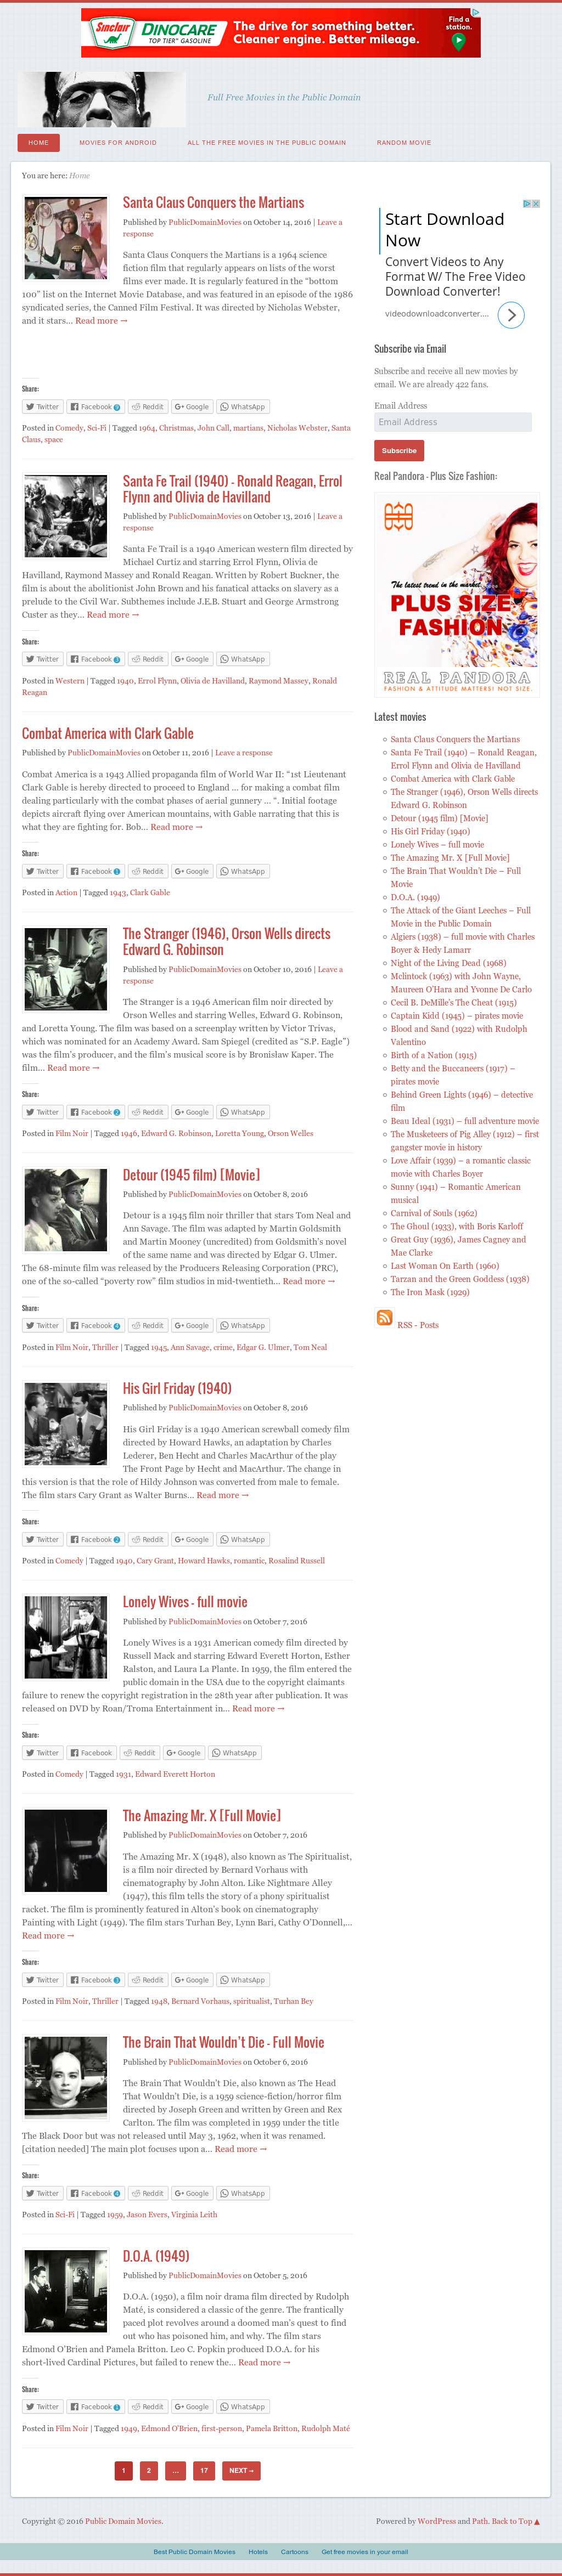 Public Domain Movies Competitors, Revenue and Employees